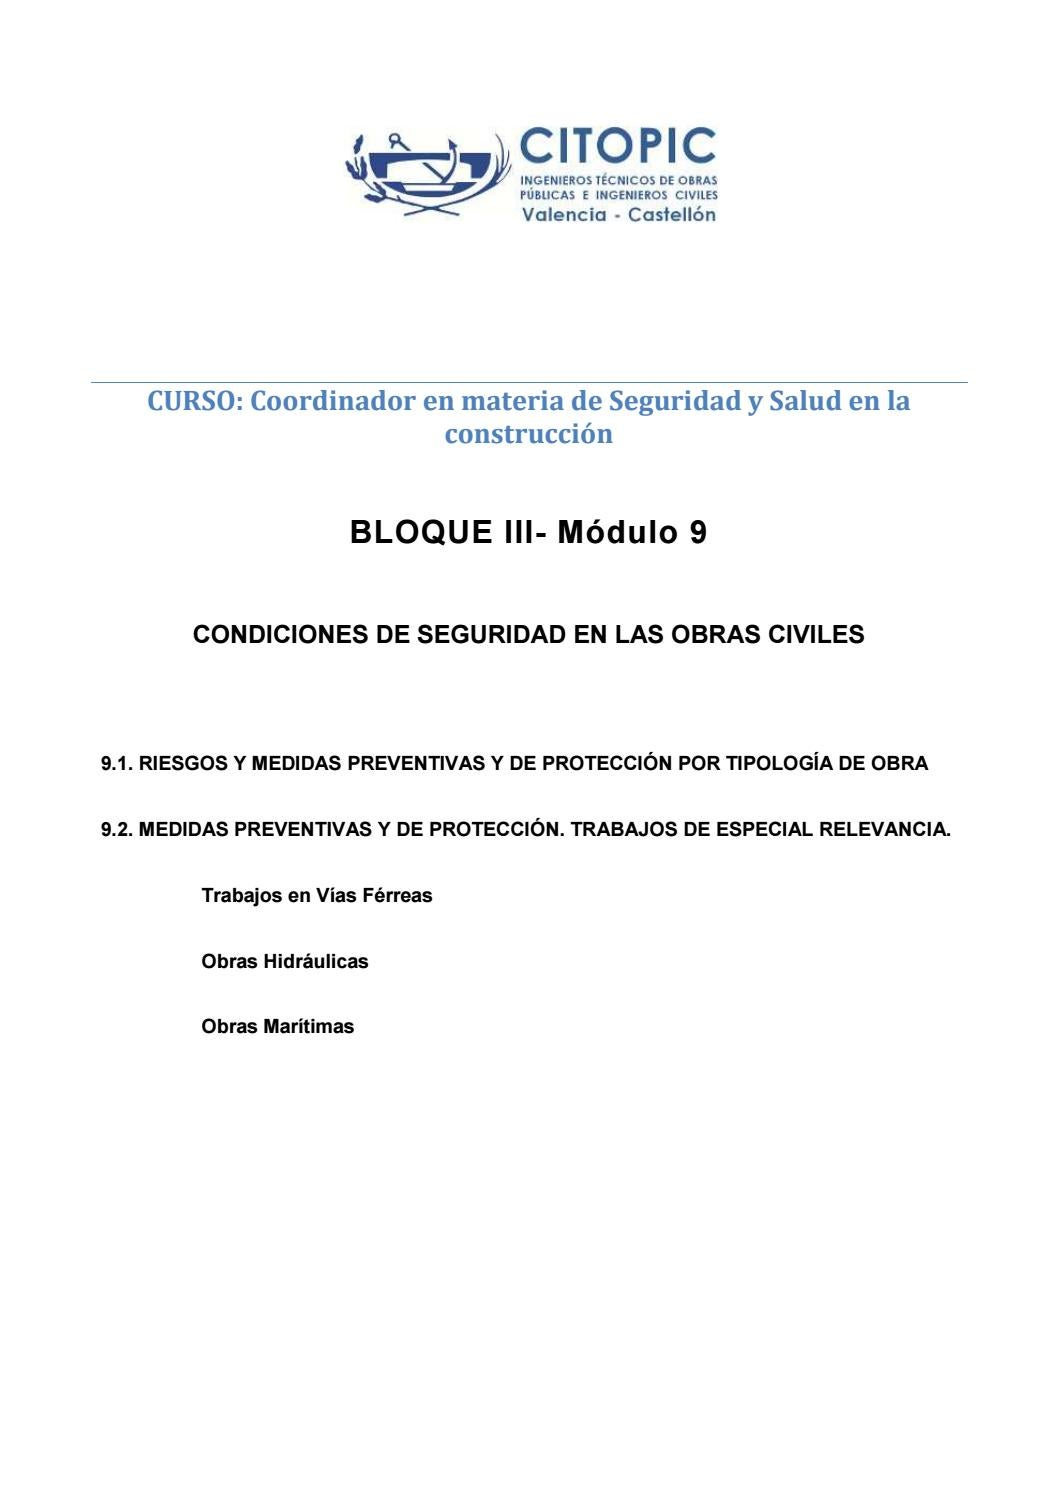 CSYS BLOQUE III MODULO 09 by CITOPIC-CV - issuu